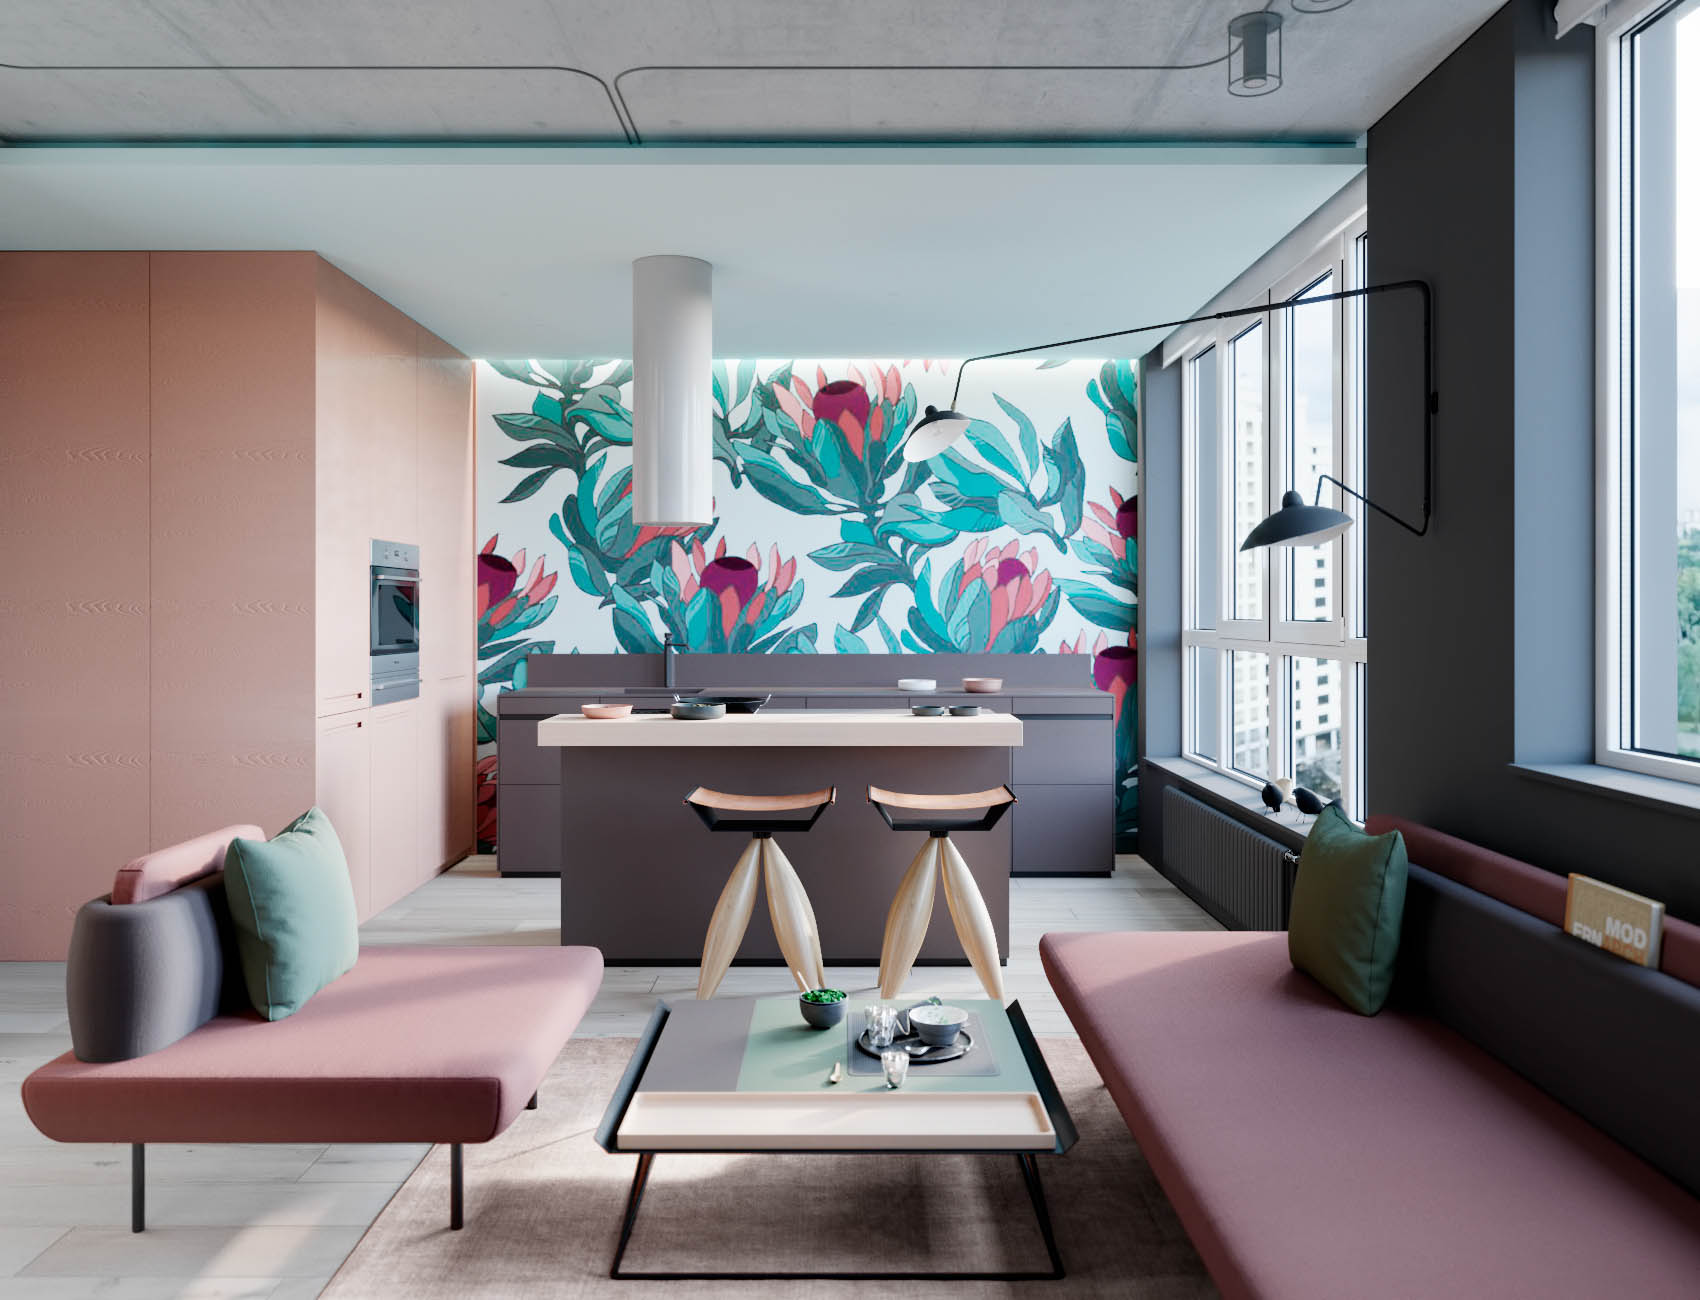 Interior Design Using Pink And Green: 3 Examples To Help ...